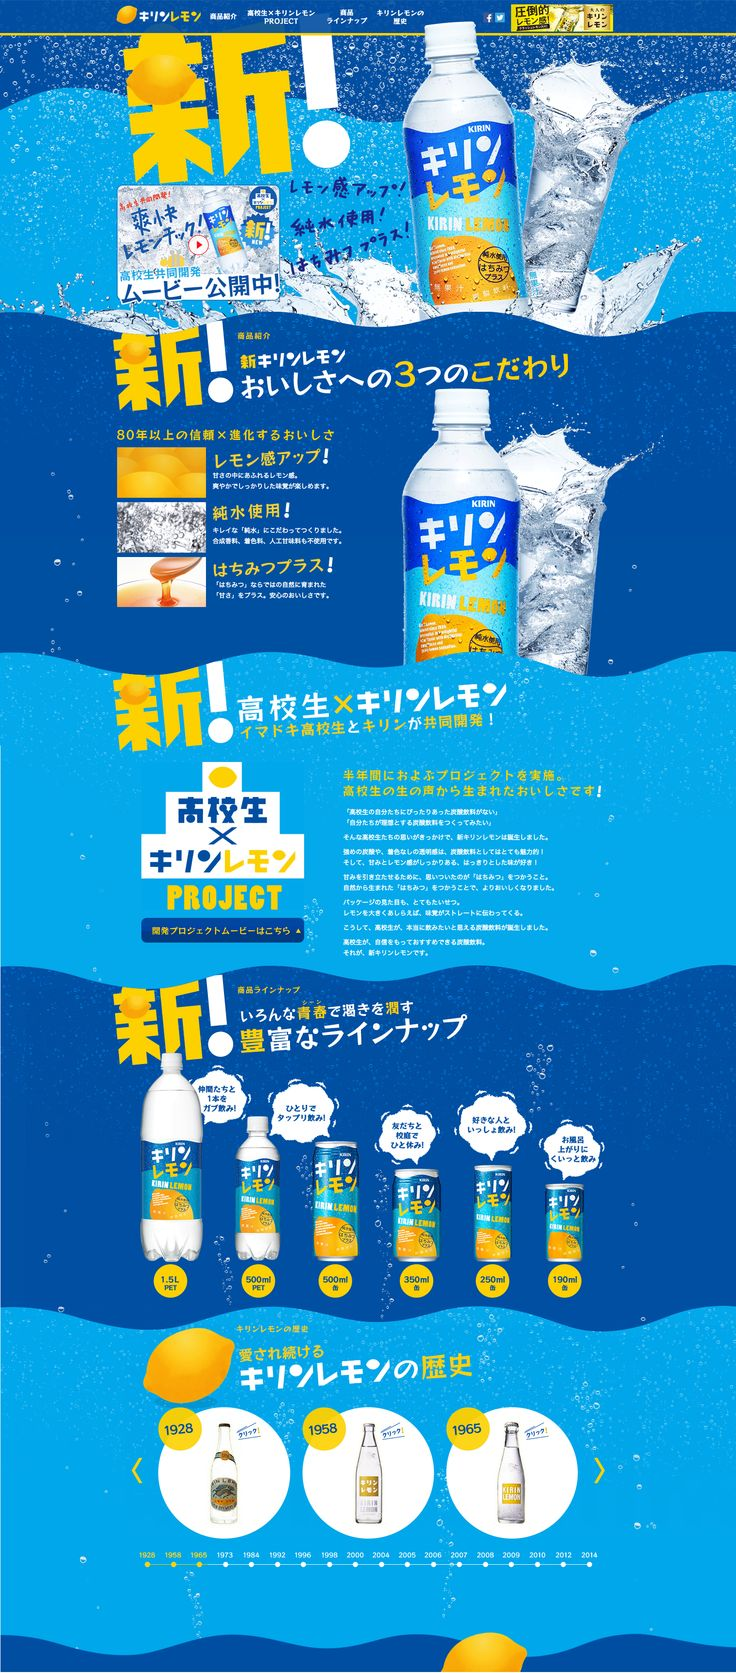 キリンレモン http://www.kirin.co.jp/products/softdrink/kirinlemon/